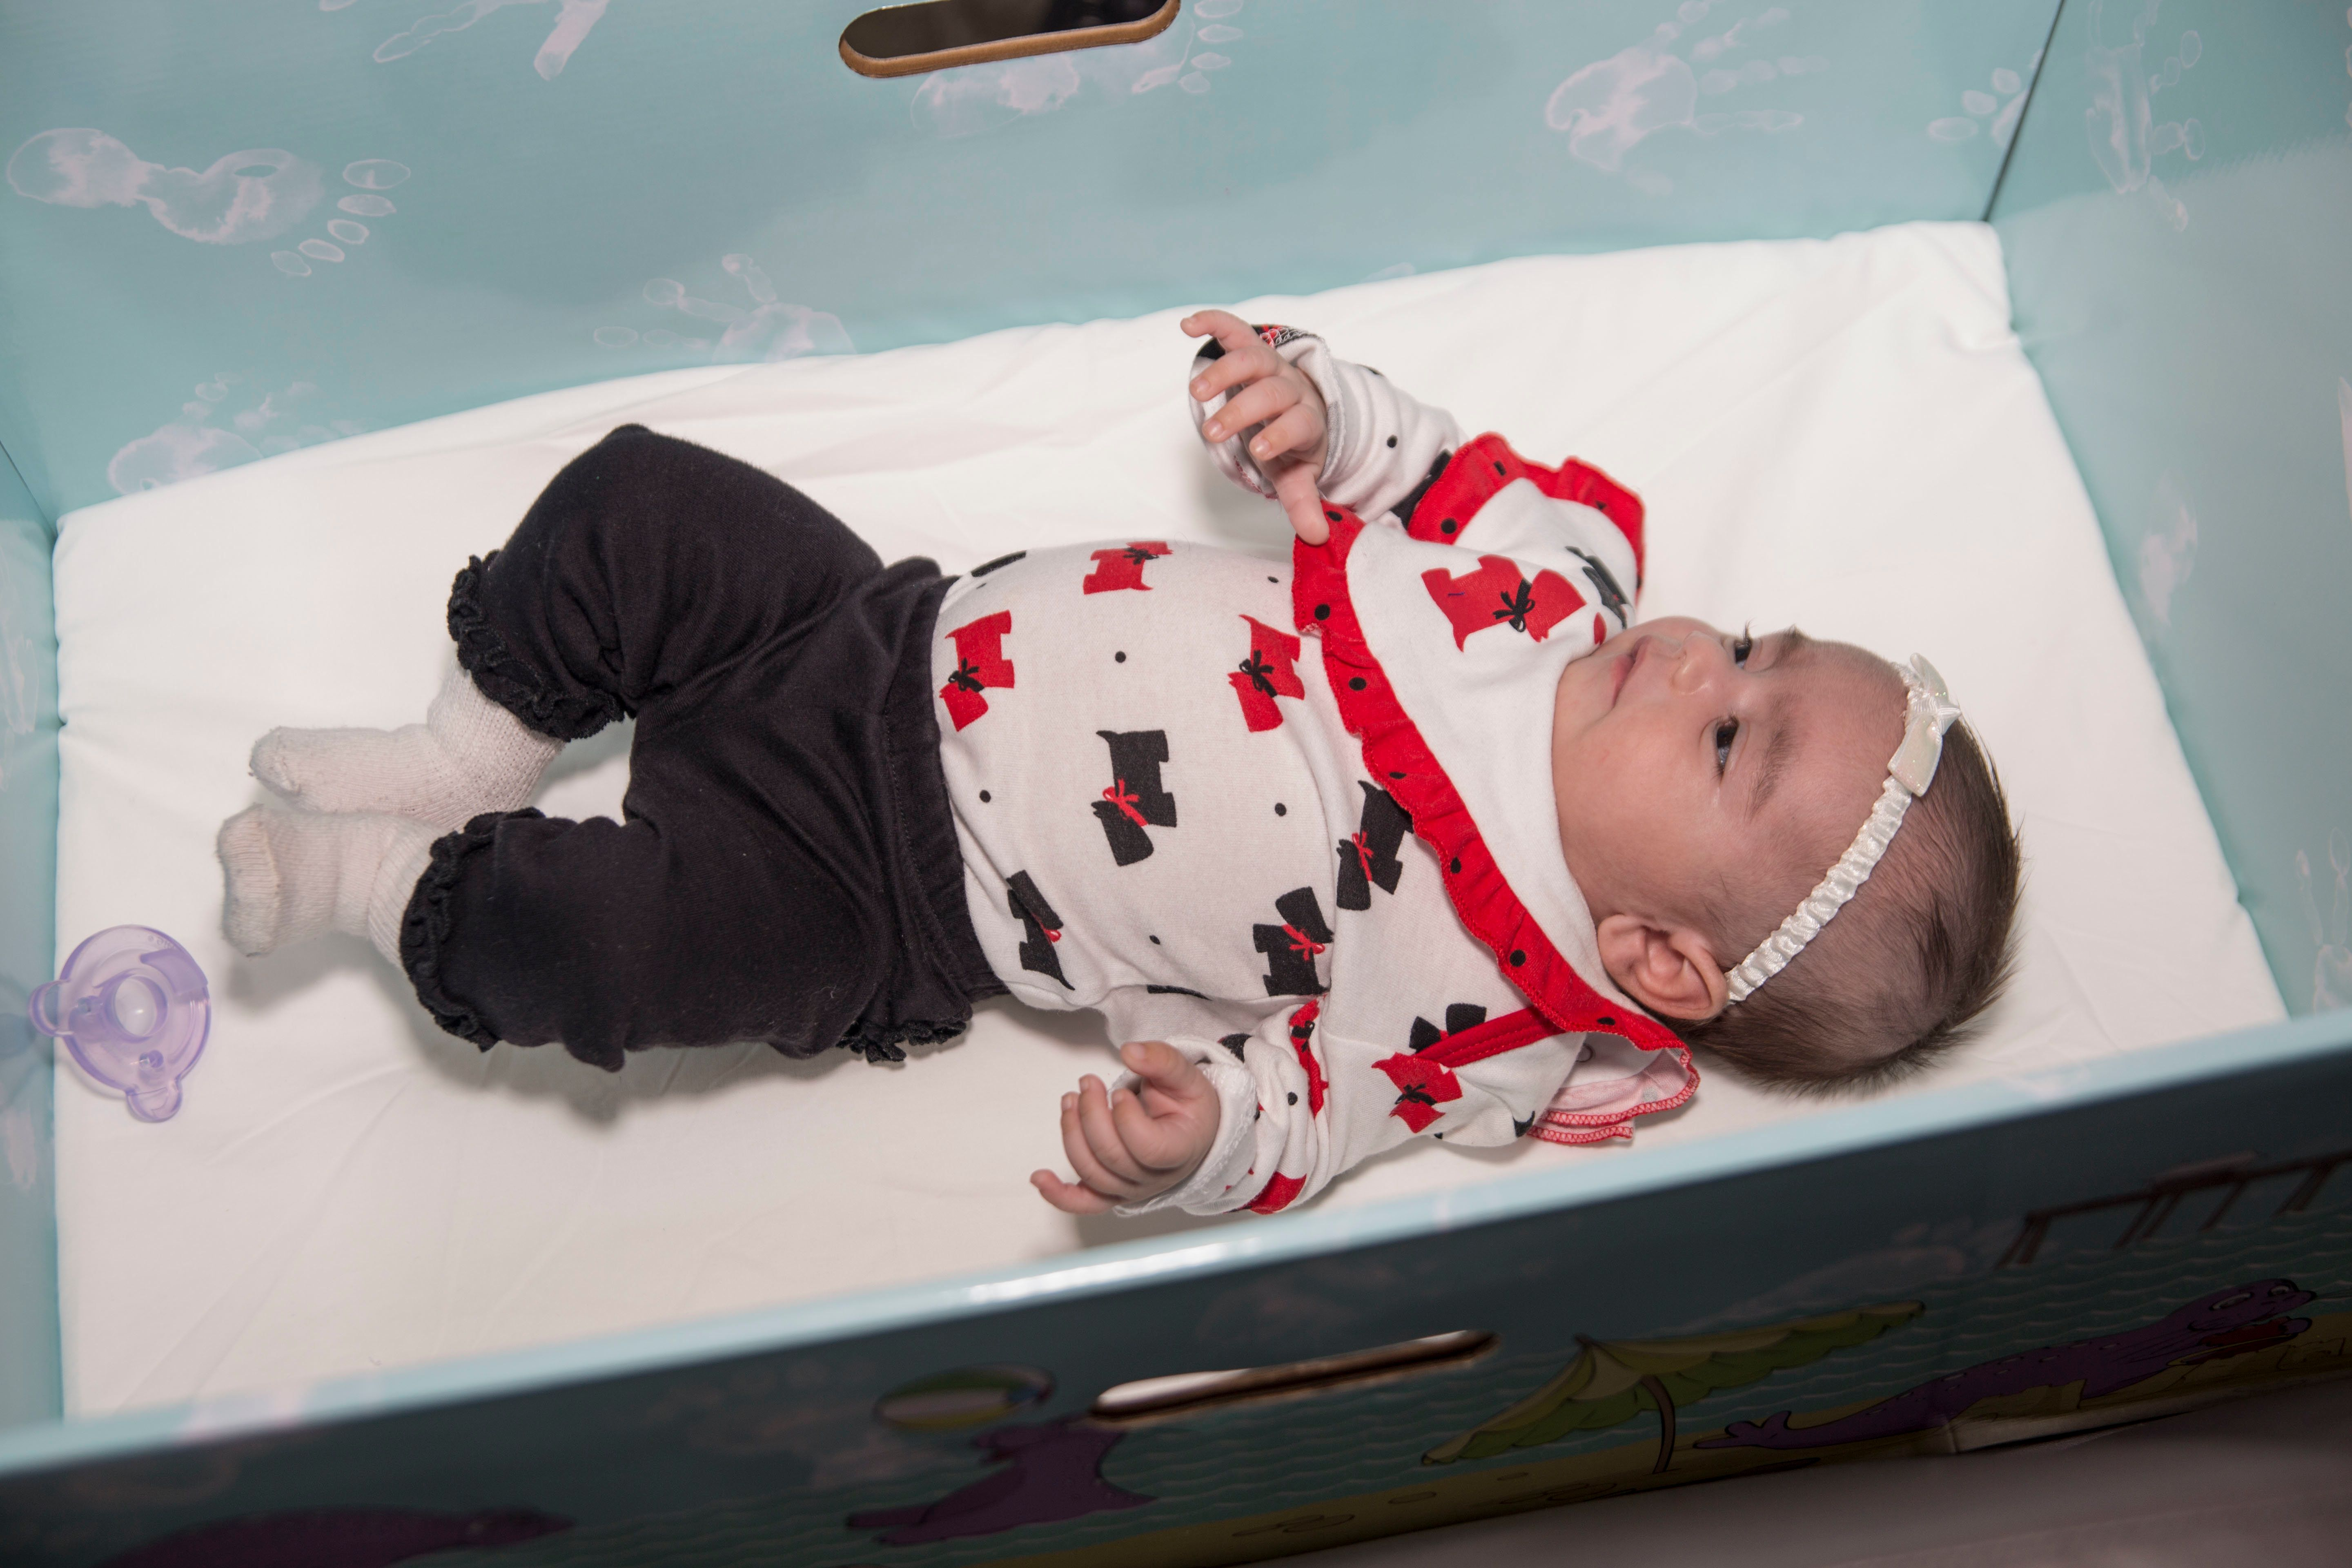 New Jersey parents will receive free baby boxes for their newborns.